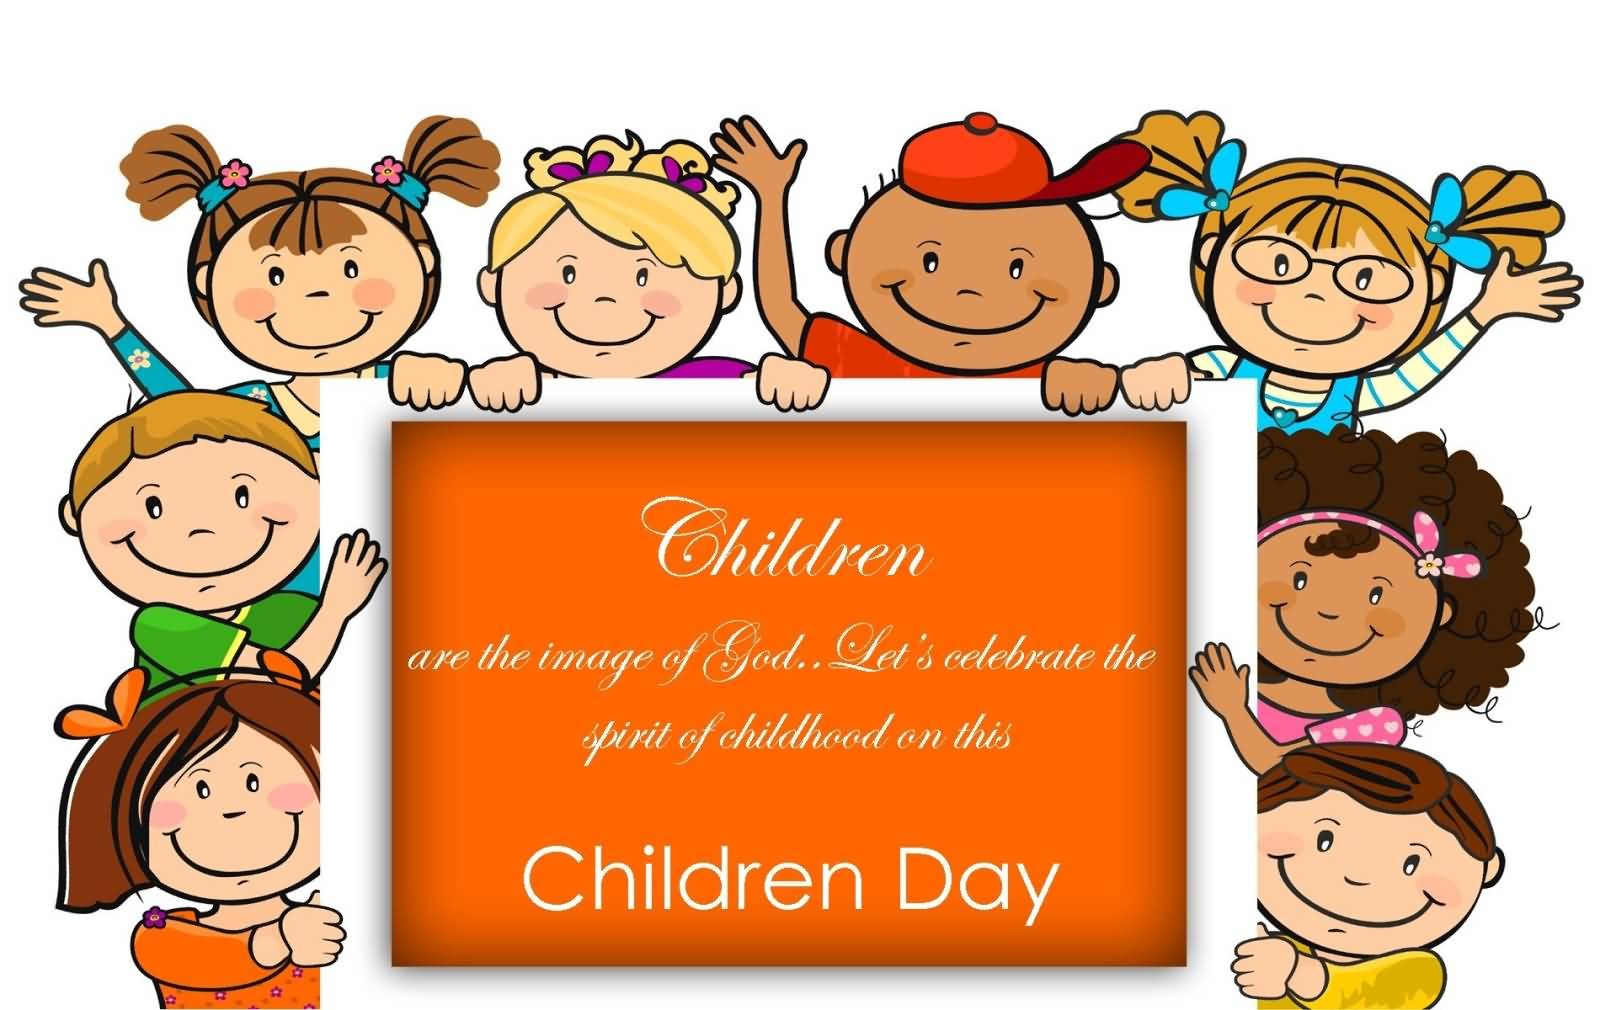 childrens day essay tamil